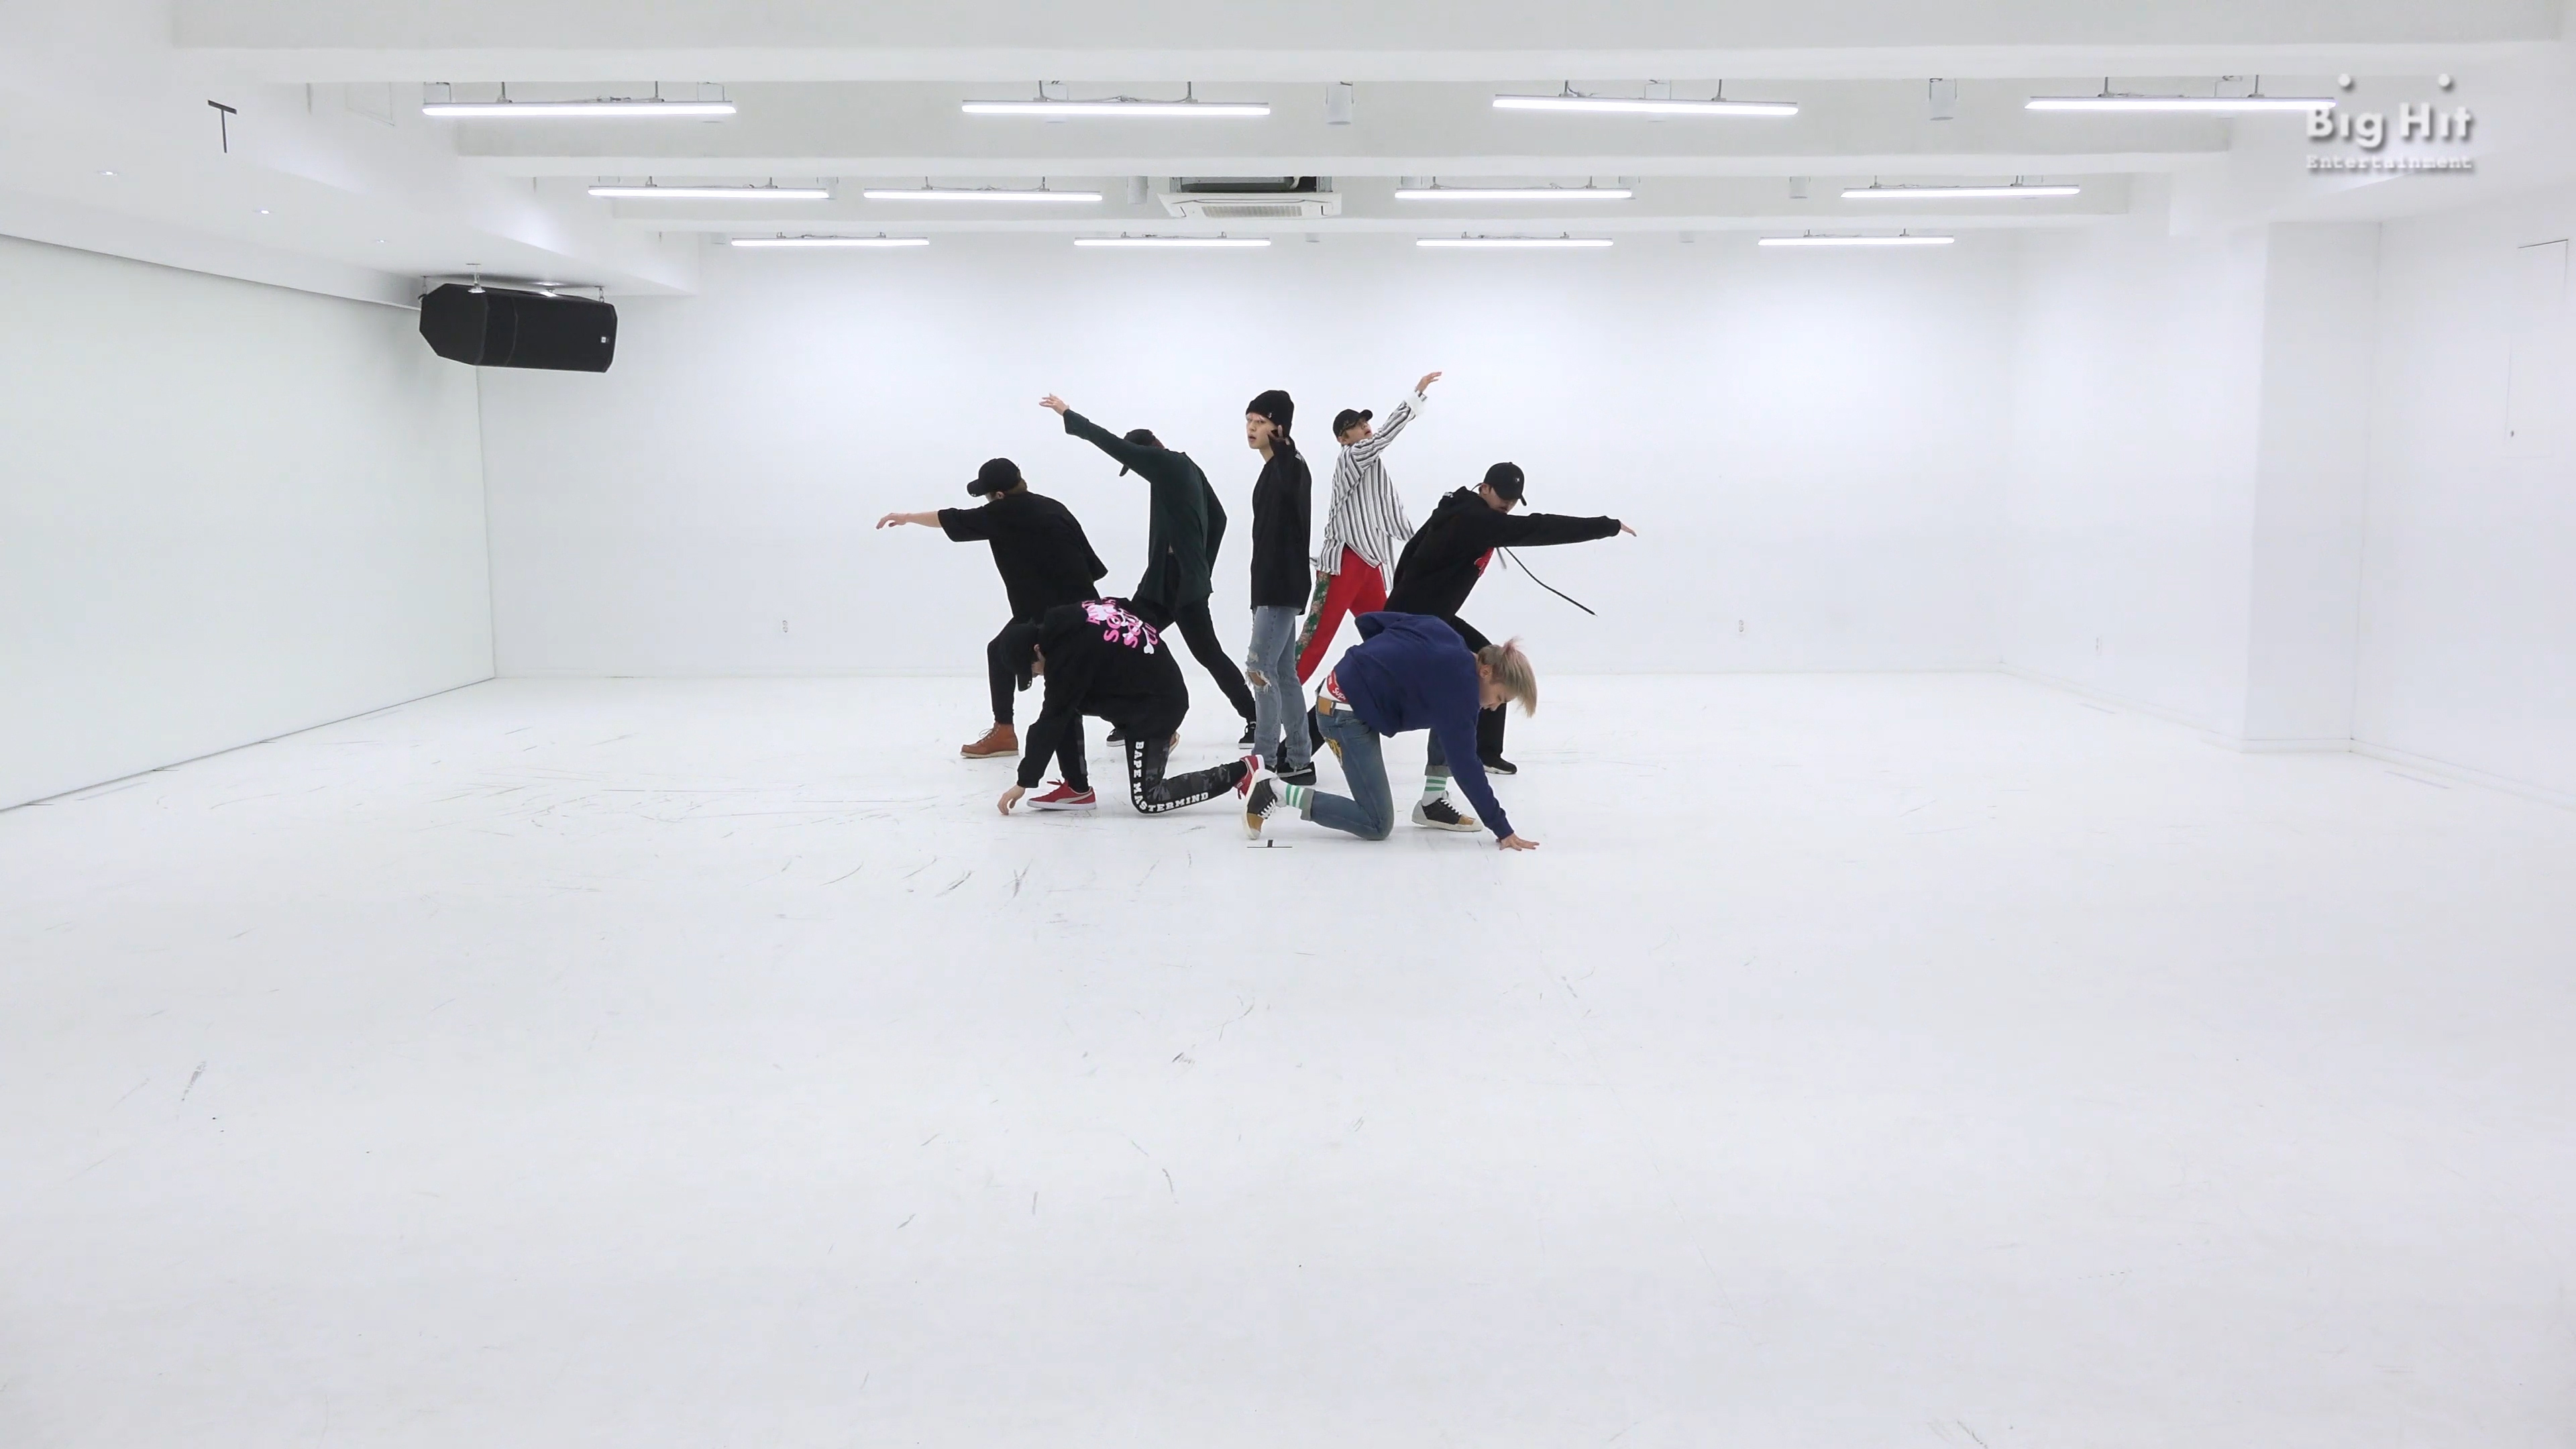 BTS '봄날 (Spring Day)' Dance Practice